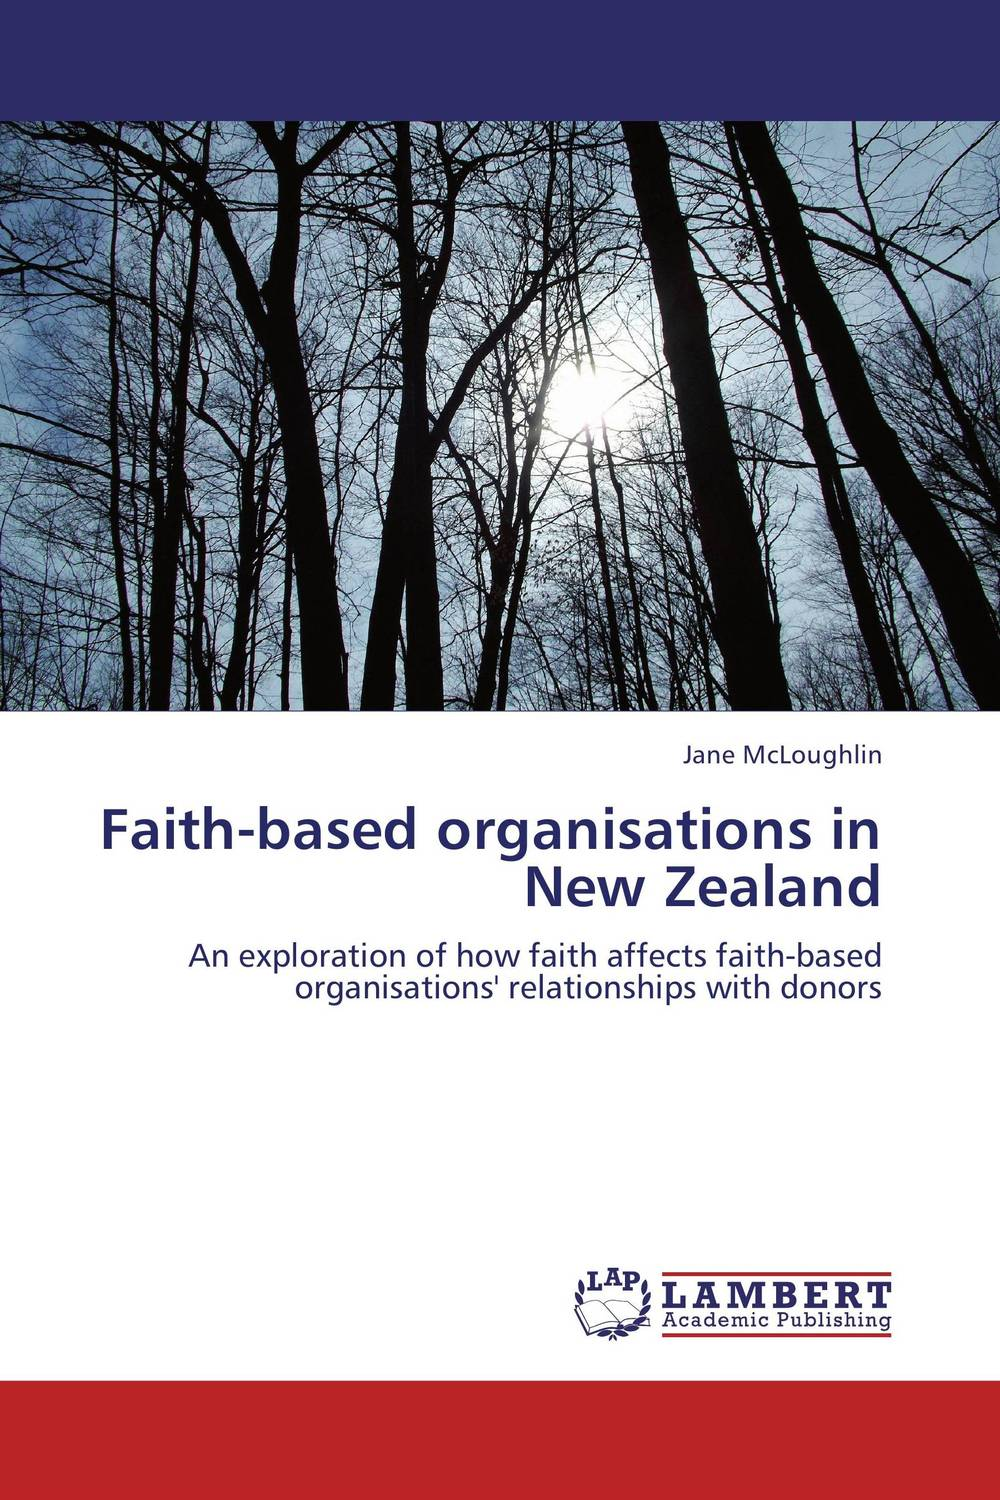 Faith-based organisations in New Zealand jane mcloughlin faith based organisations in new zealand